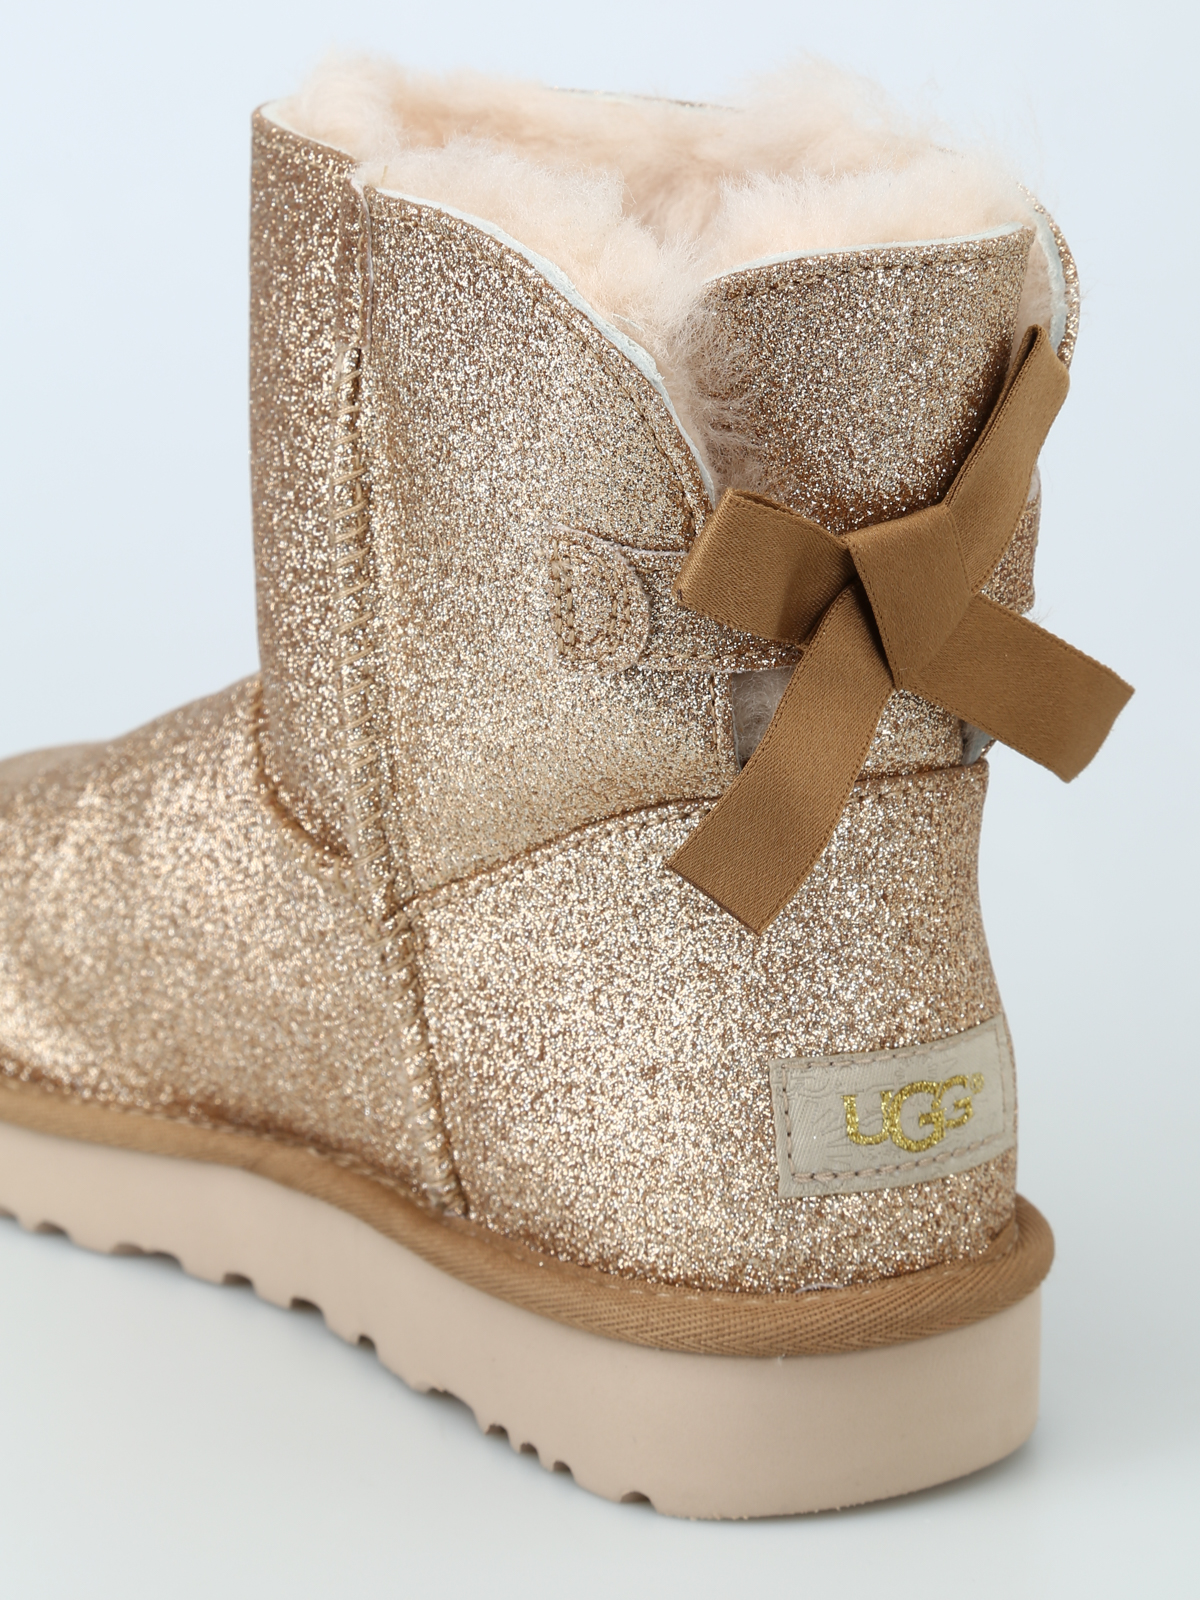 a00e4195ca5 Ugg - Mini Bailey Bow Sparkle gold ankle boots - ankle boots ...